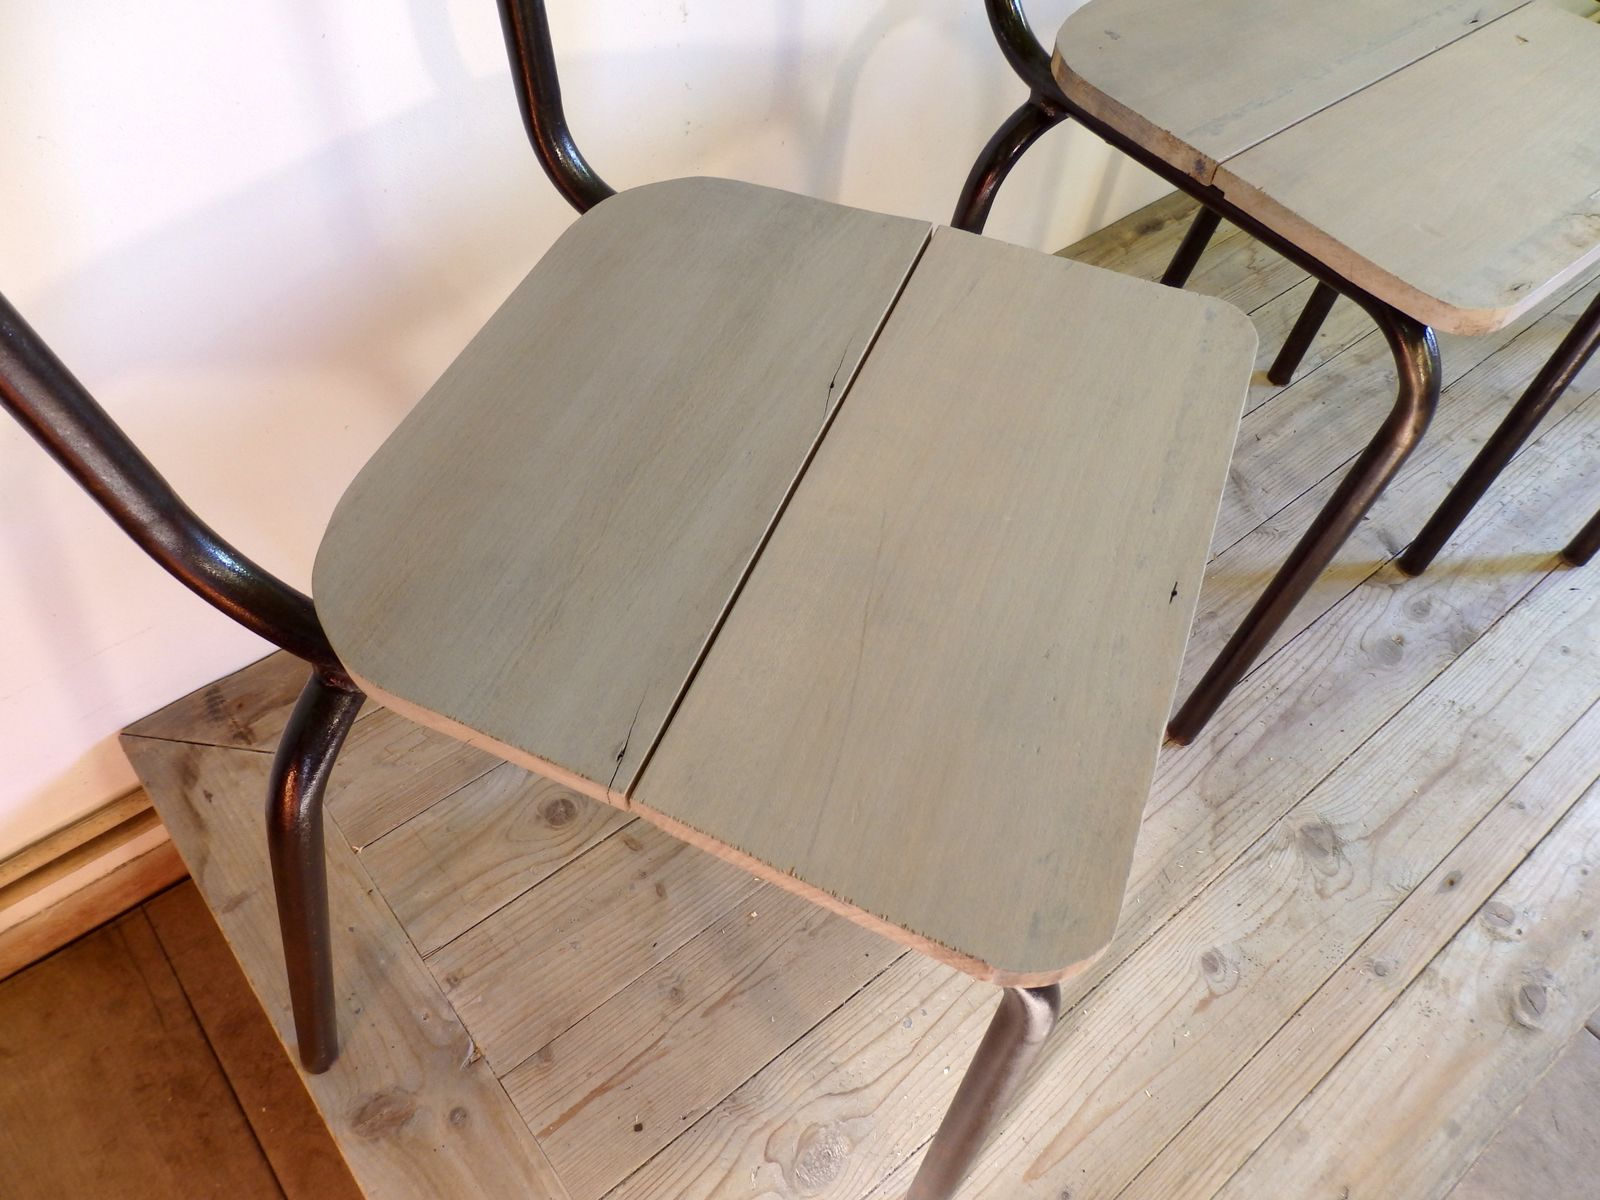 Mullca 510 Industrial Chairs 1960s Set of 4 for sale at Pamono